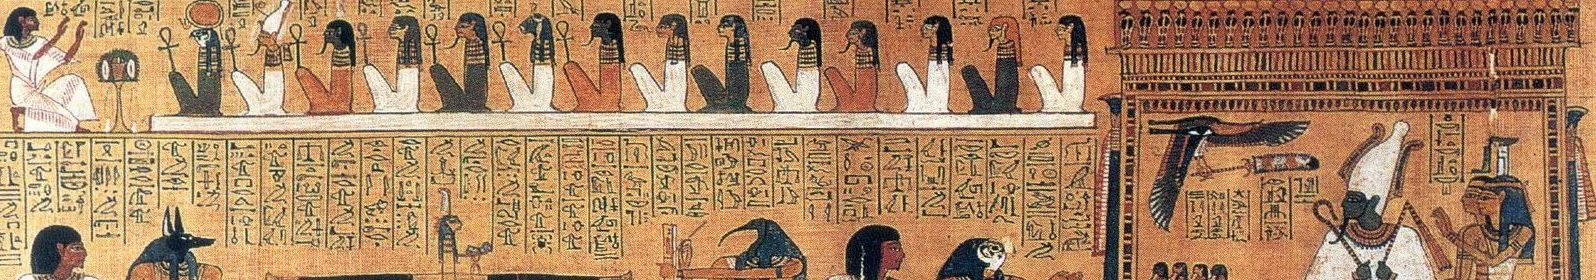 The Most Famous Egyptian Mythology Gods and Goddess